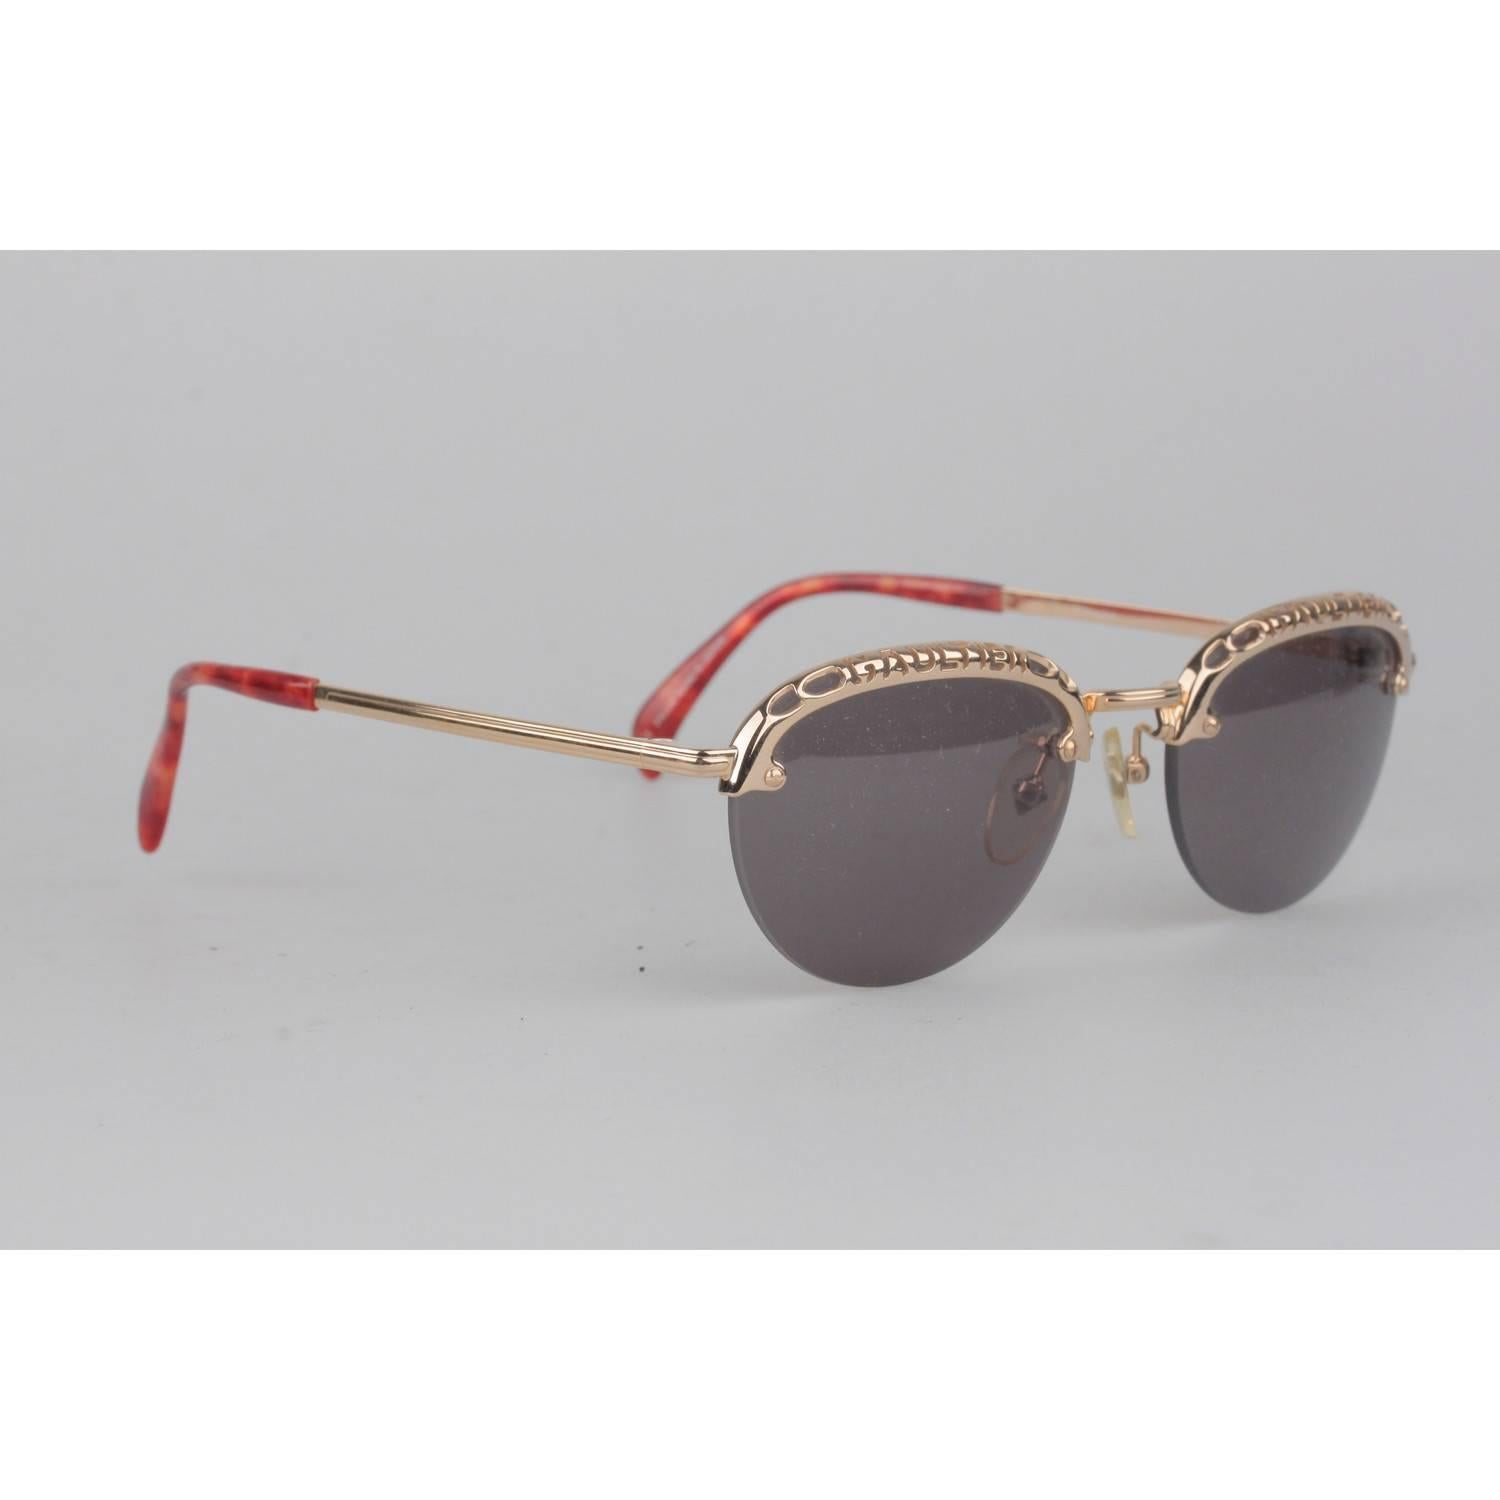 8cbc34a9109 Jean Paul Gaultier Vintage Gold Round Sunglasses For Sale at 1stdibs